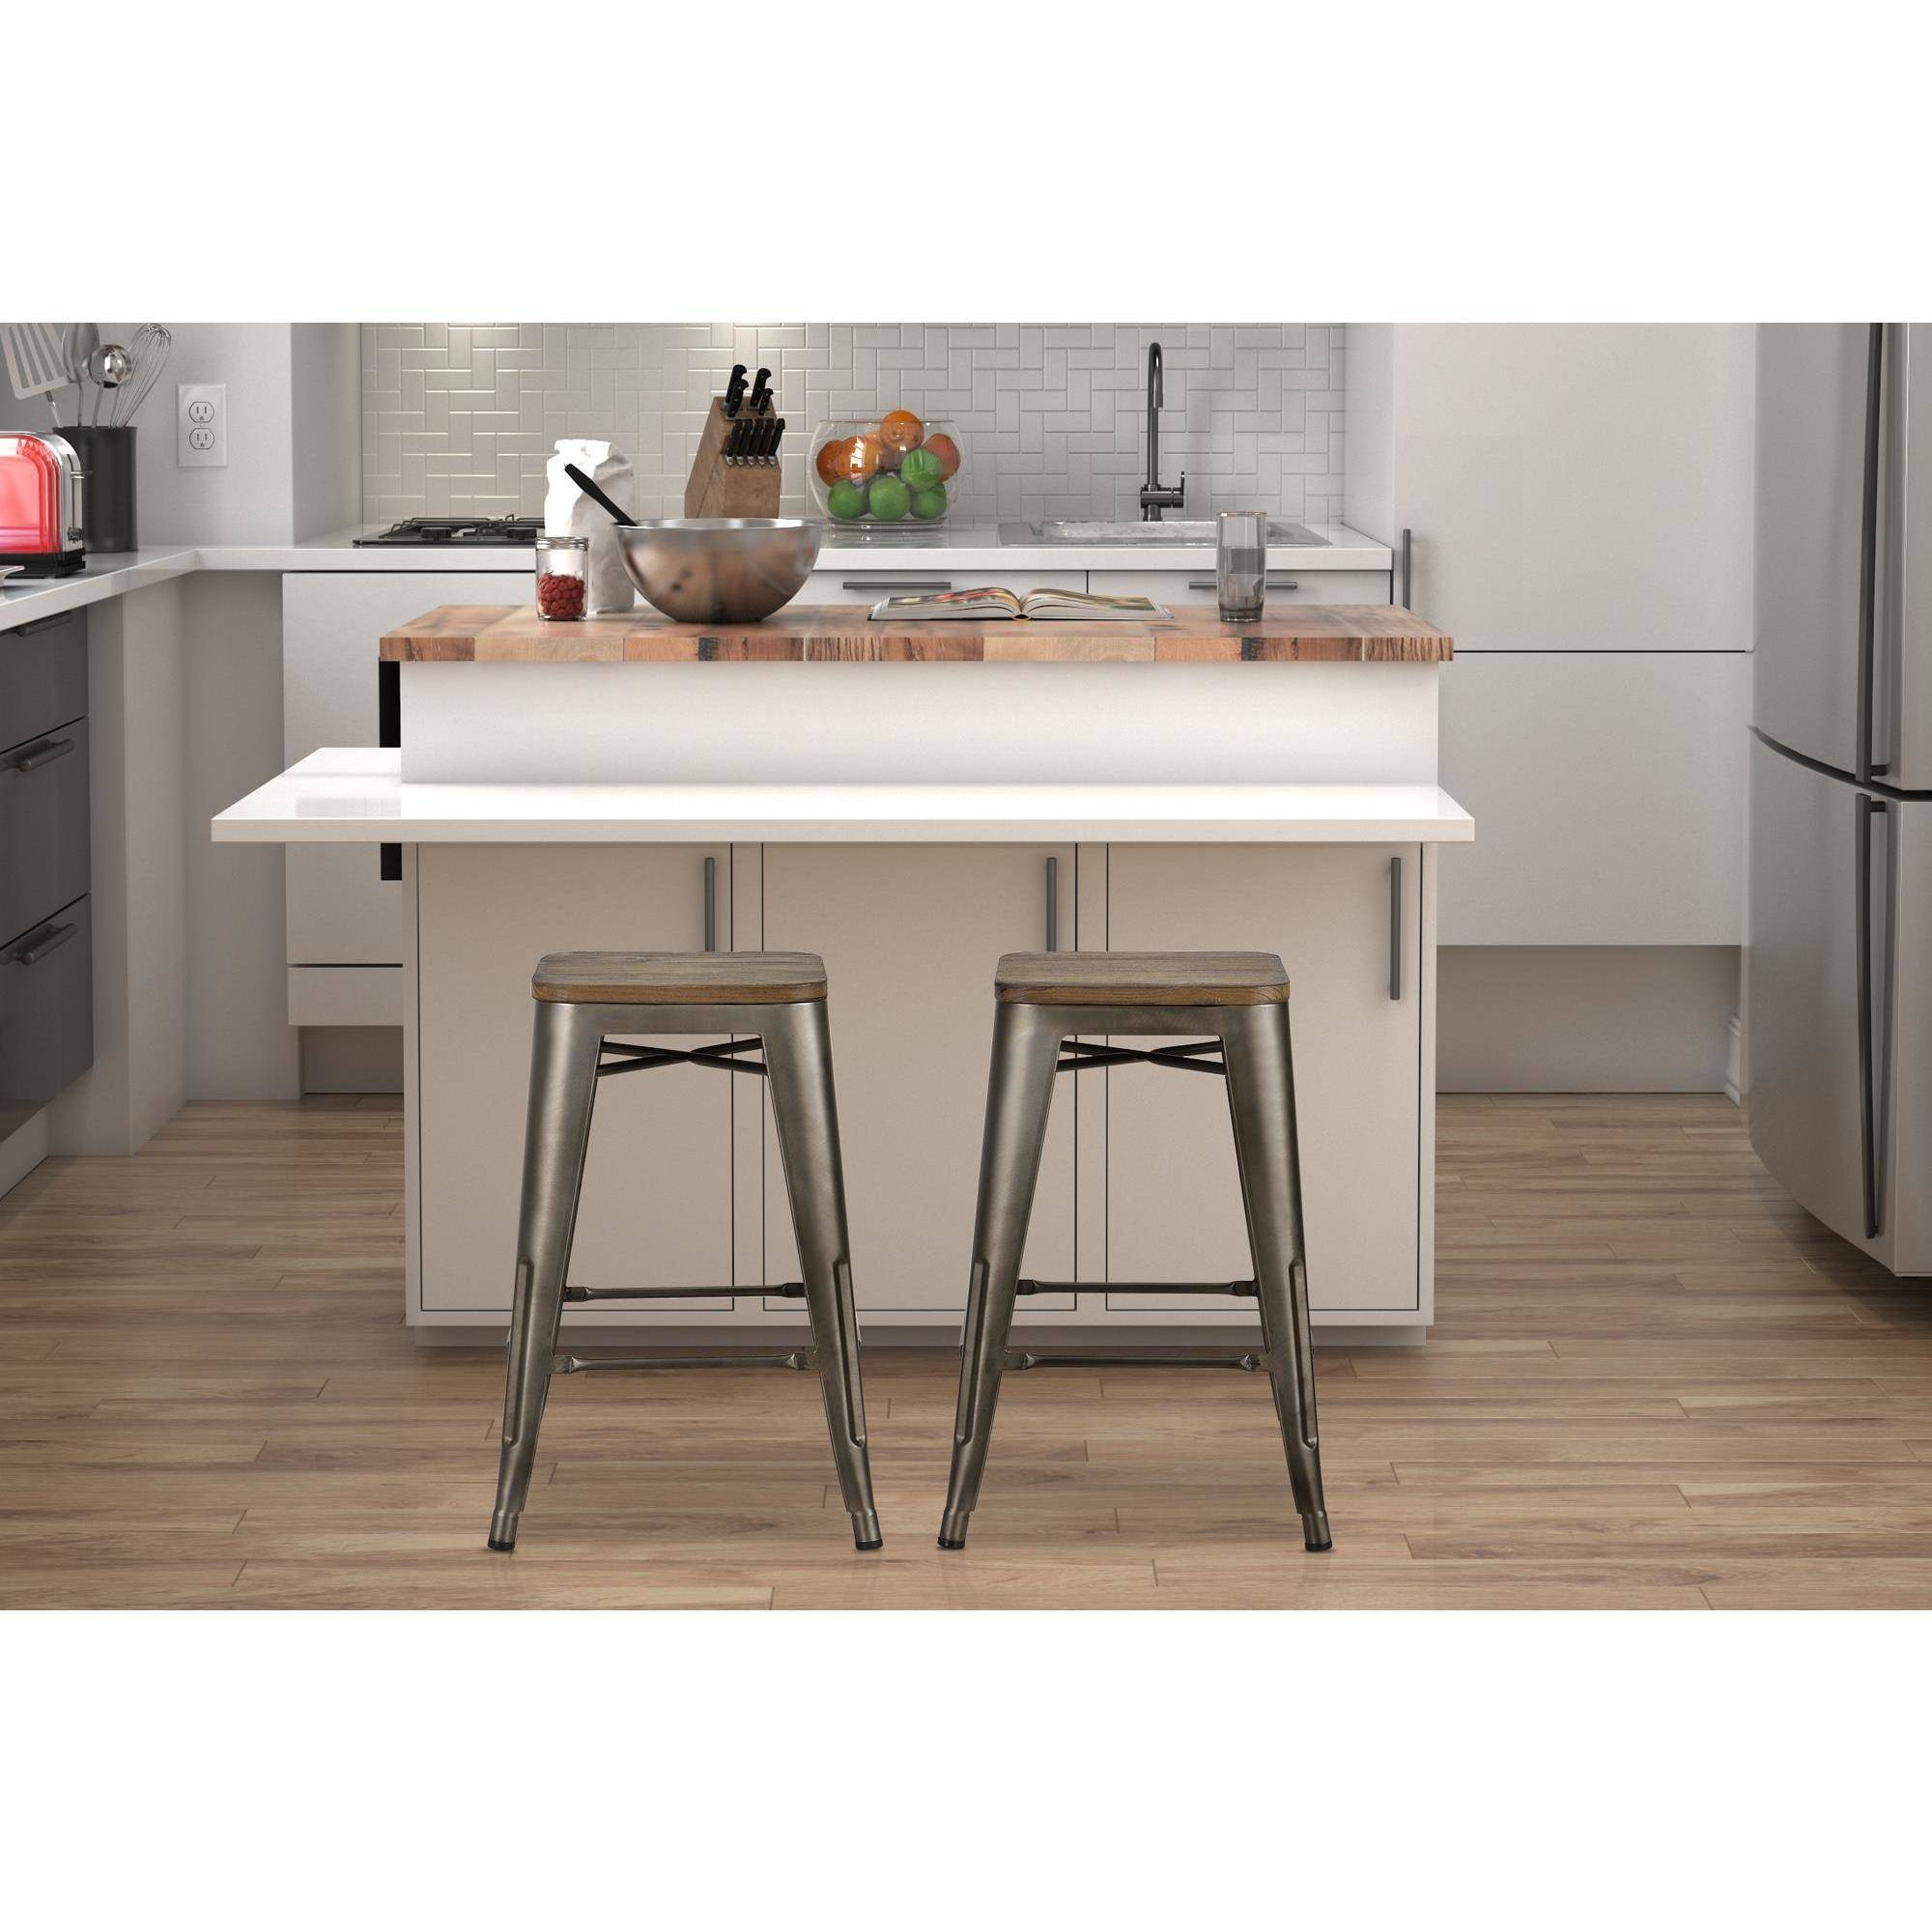 """Dorel Home Products Fusion 24"""" Metal Backless Counter Stool with Wood Seat, Set of 2, Multiple Colors"""